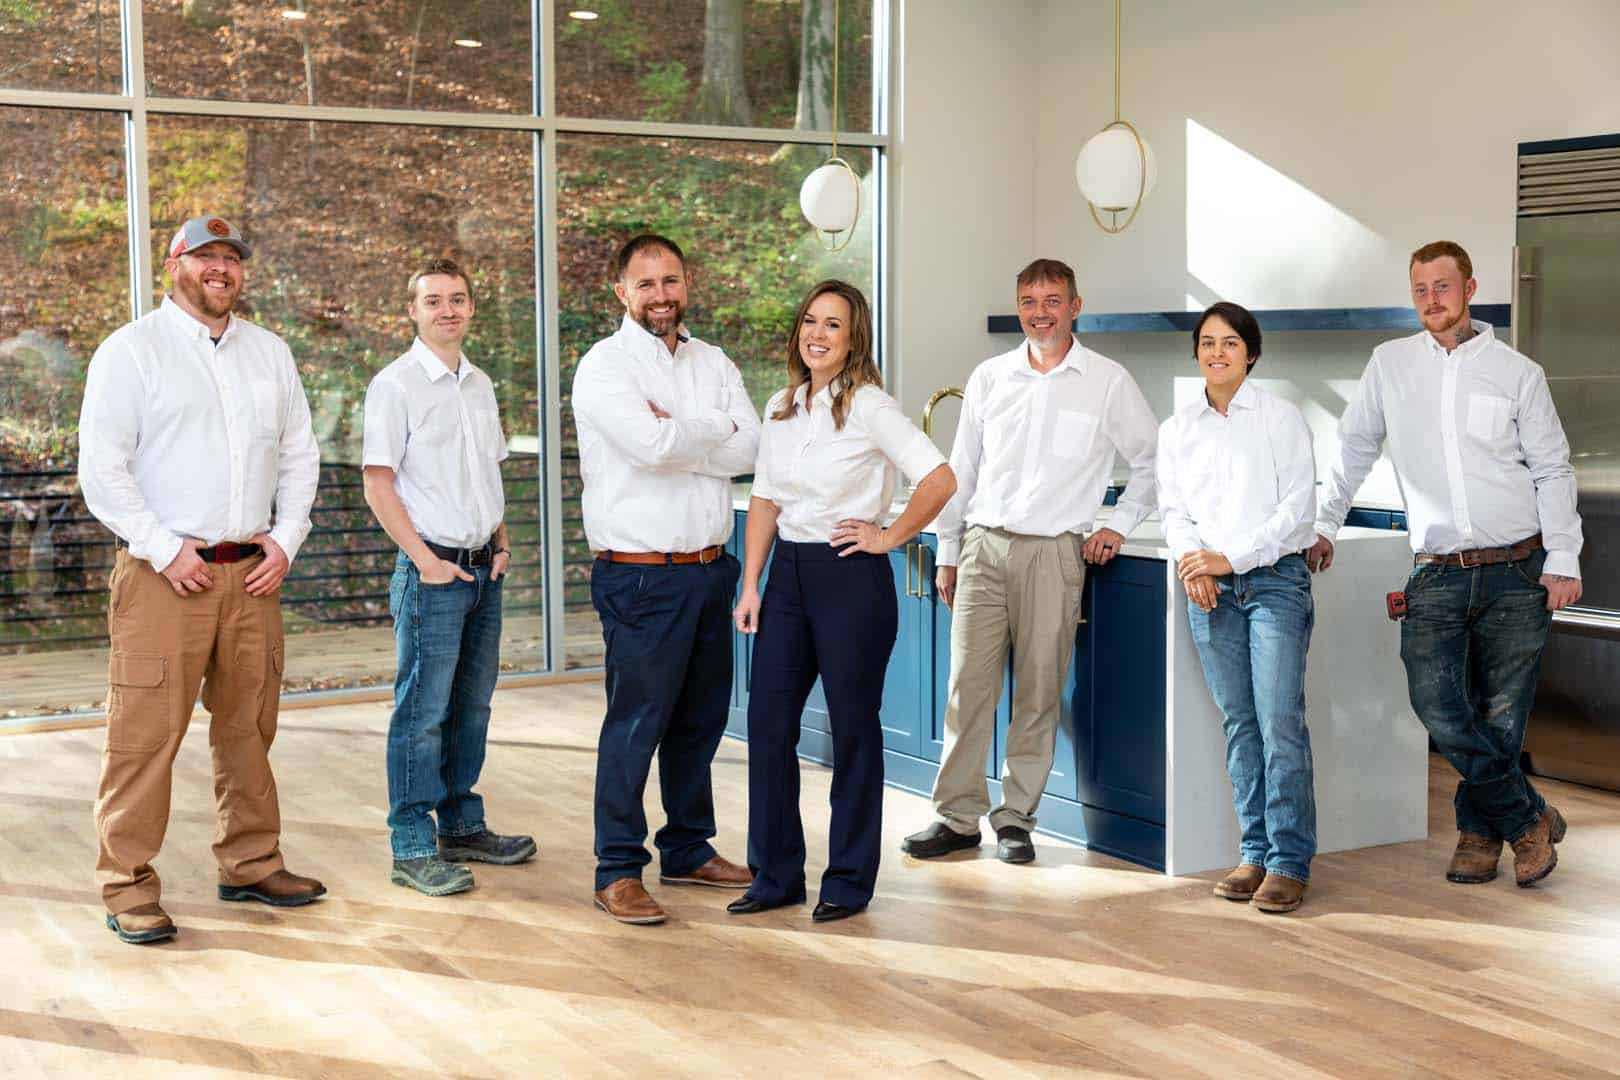 A photo of the Bio Plumbing team. Seven plumbers in white button ups.